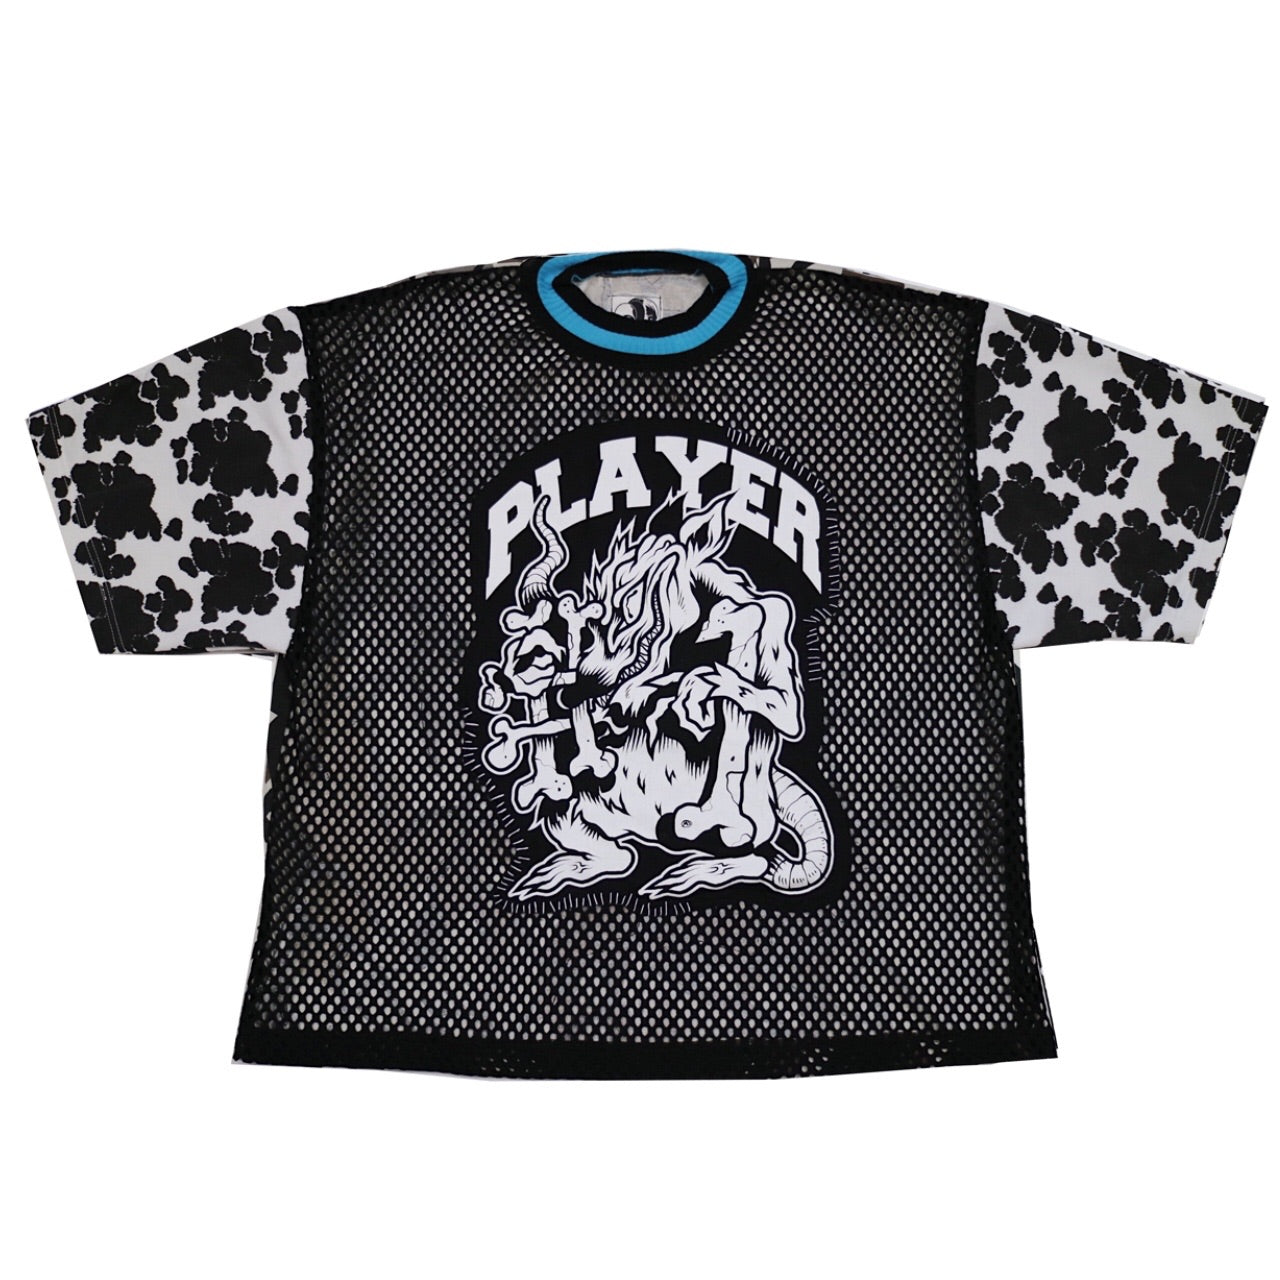 player #1 mesh box tee